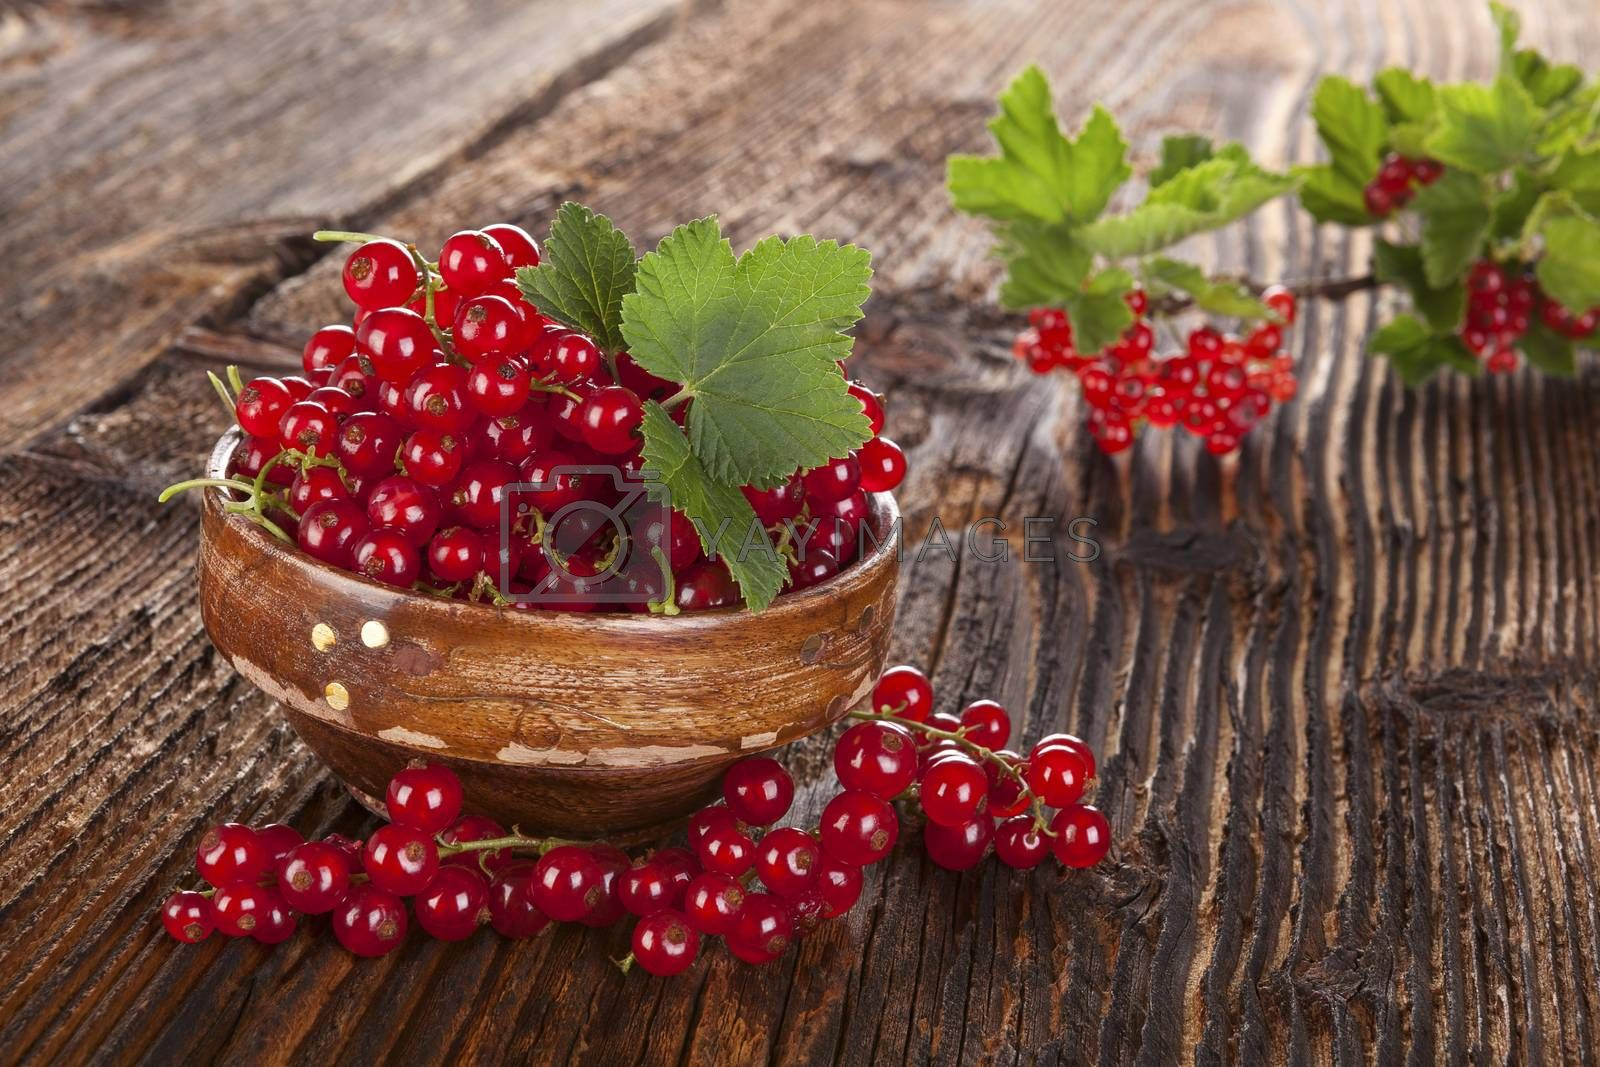 Red currant on wooden background. Healthy summer fruit eating.